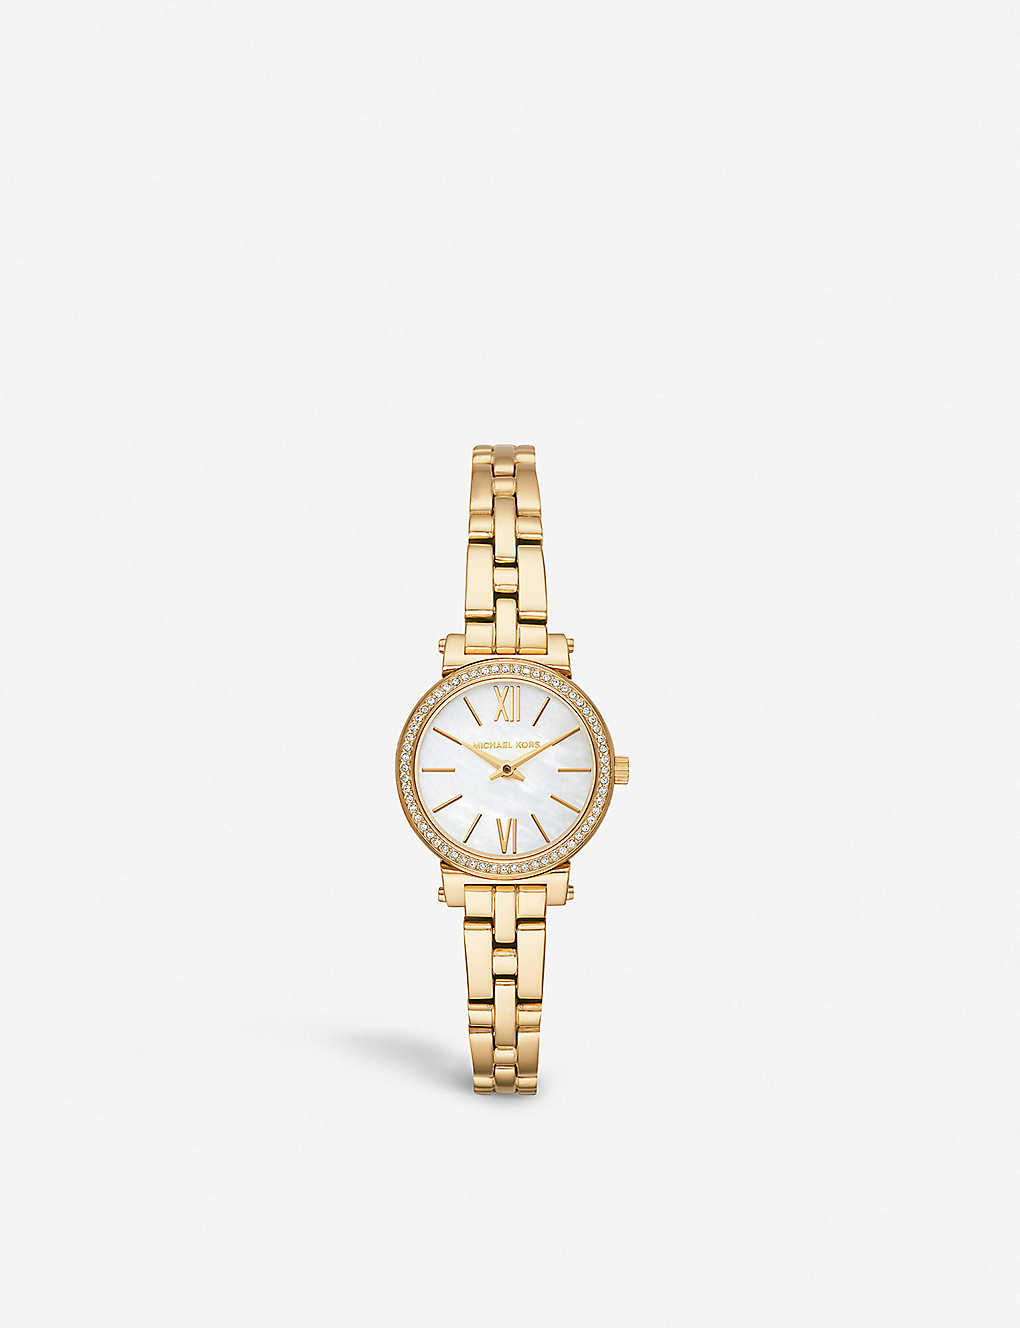 6839d369f2ac MICHAEL KORS - MK3833 Sofie yellow gold-toned stainless steel watch ...